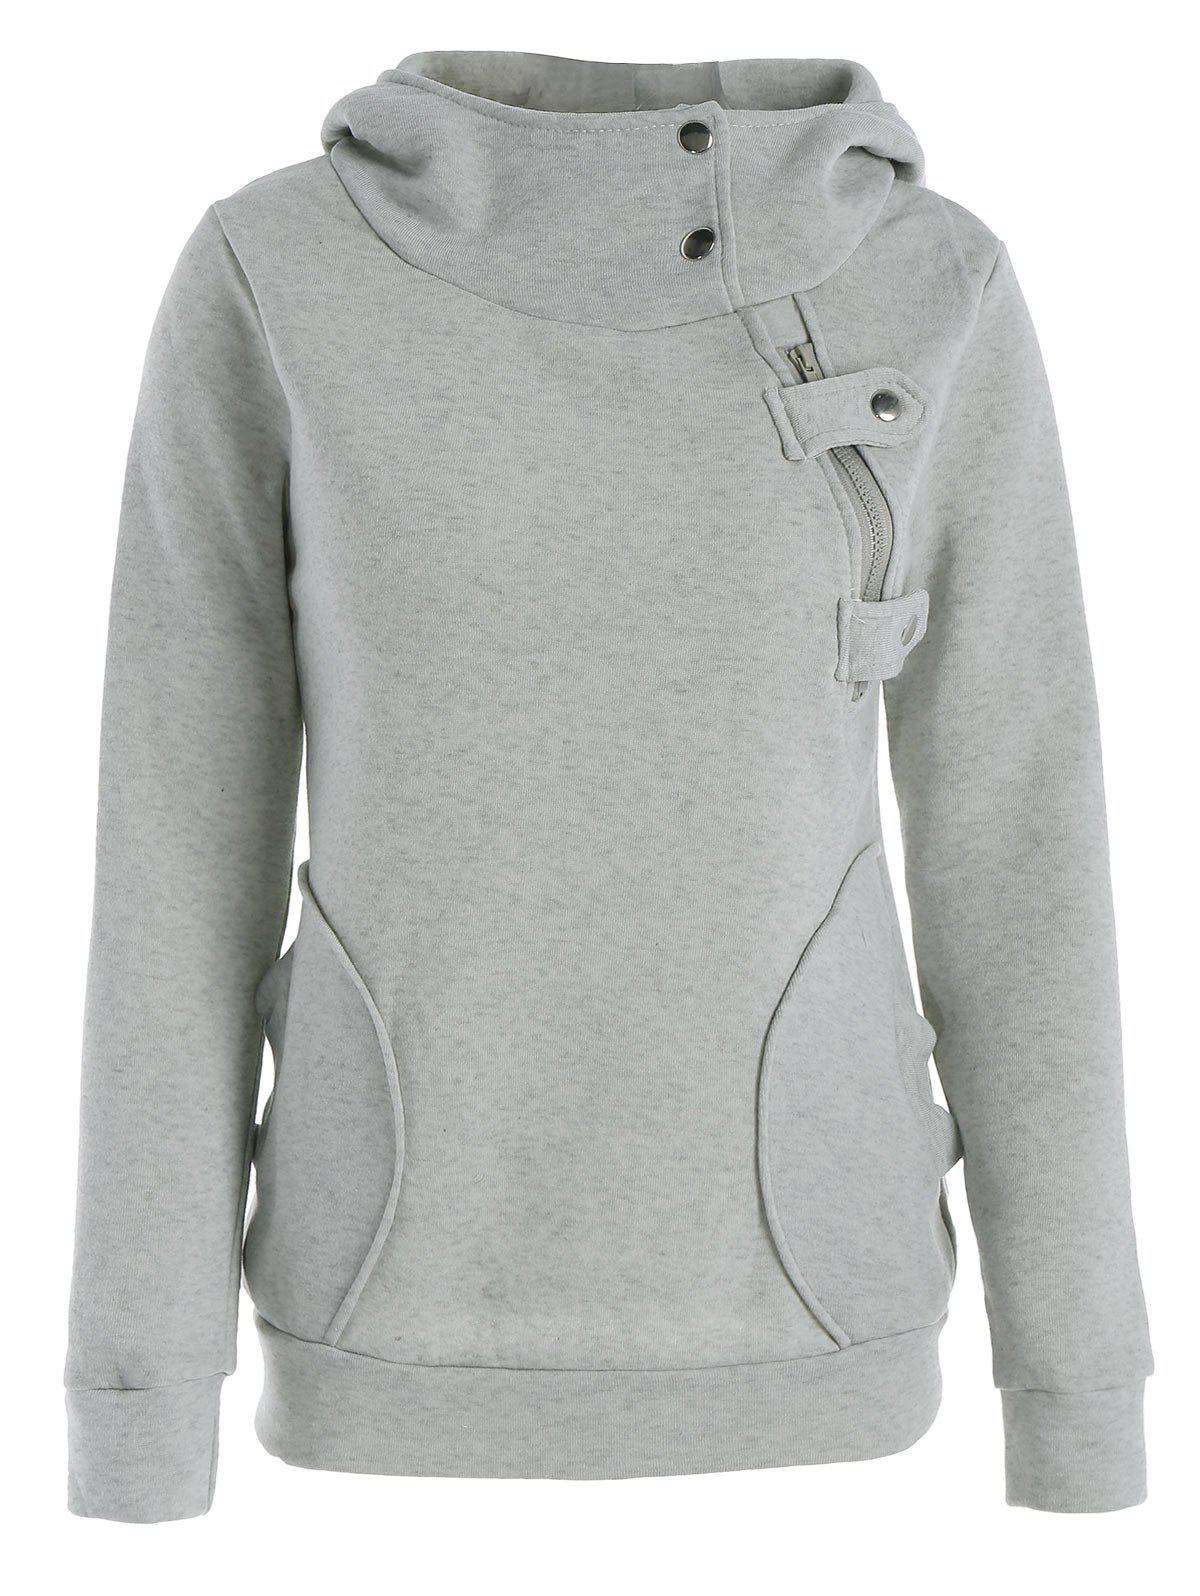 Image For Long Sleeve Pockets Inclined Zipper Pullover Hoodie